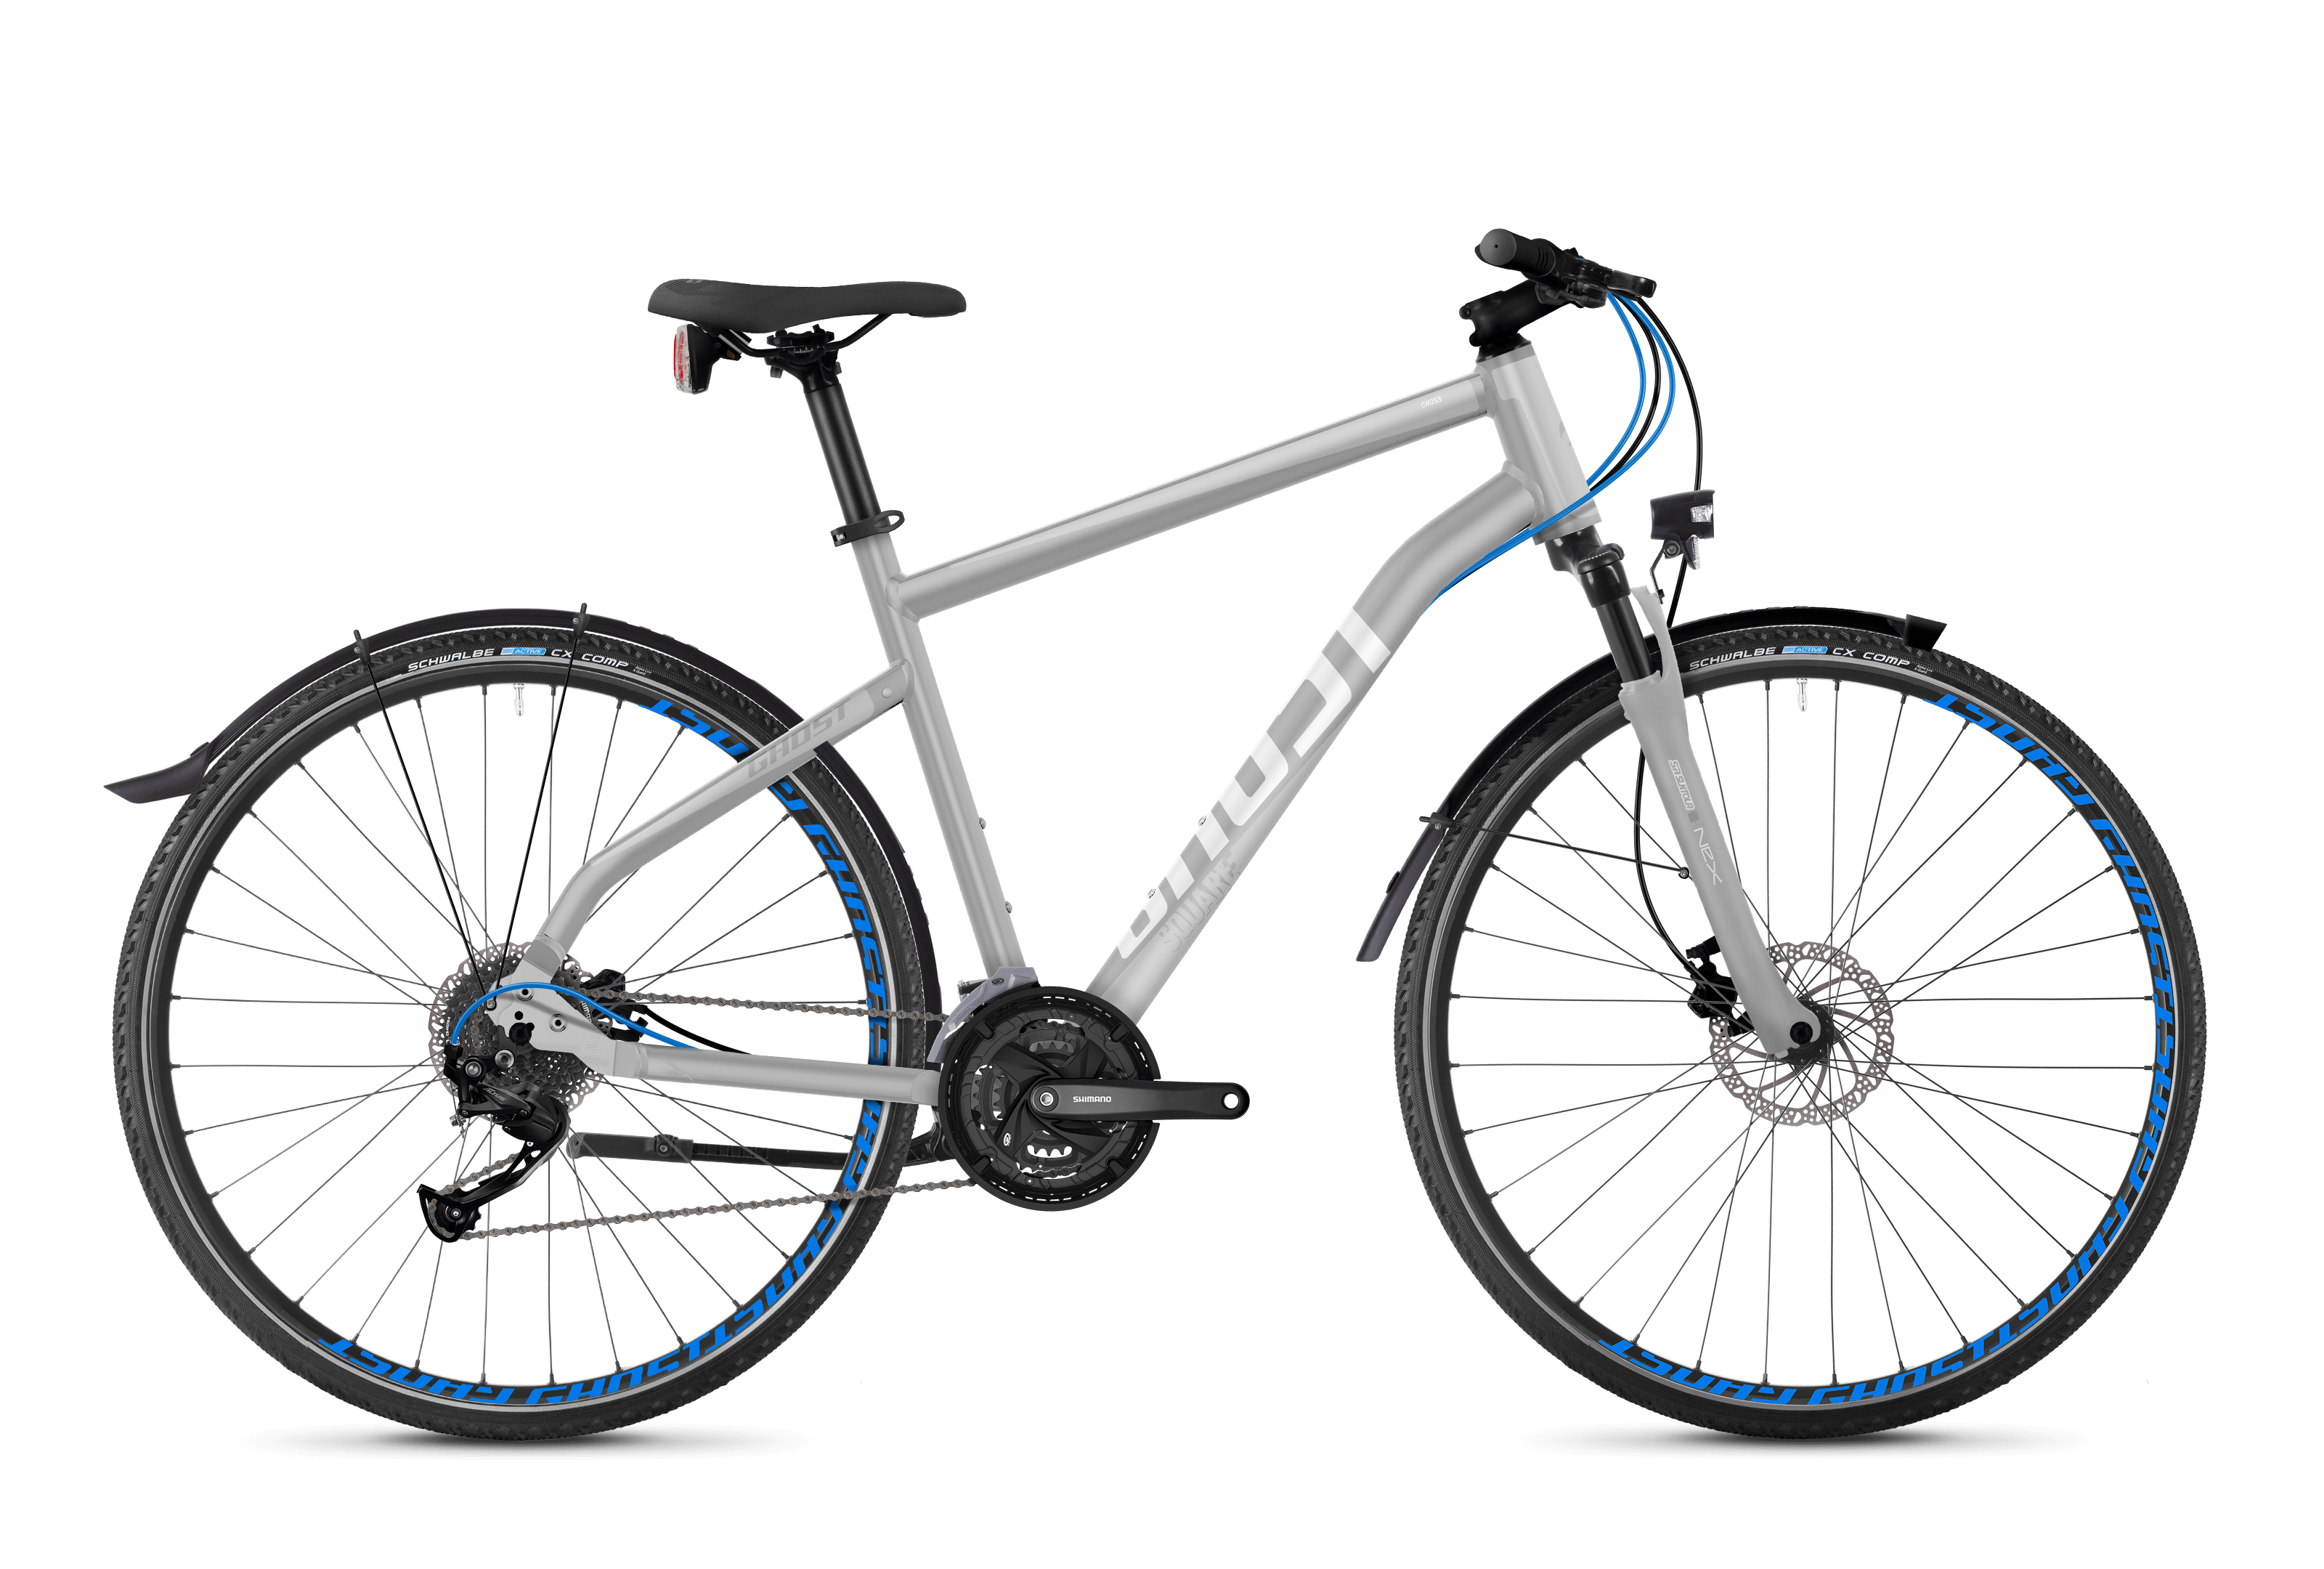 SQUARE Cross X 3.8 AL Fahrrad Lanes GHOST